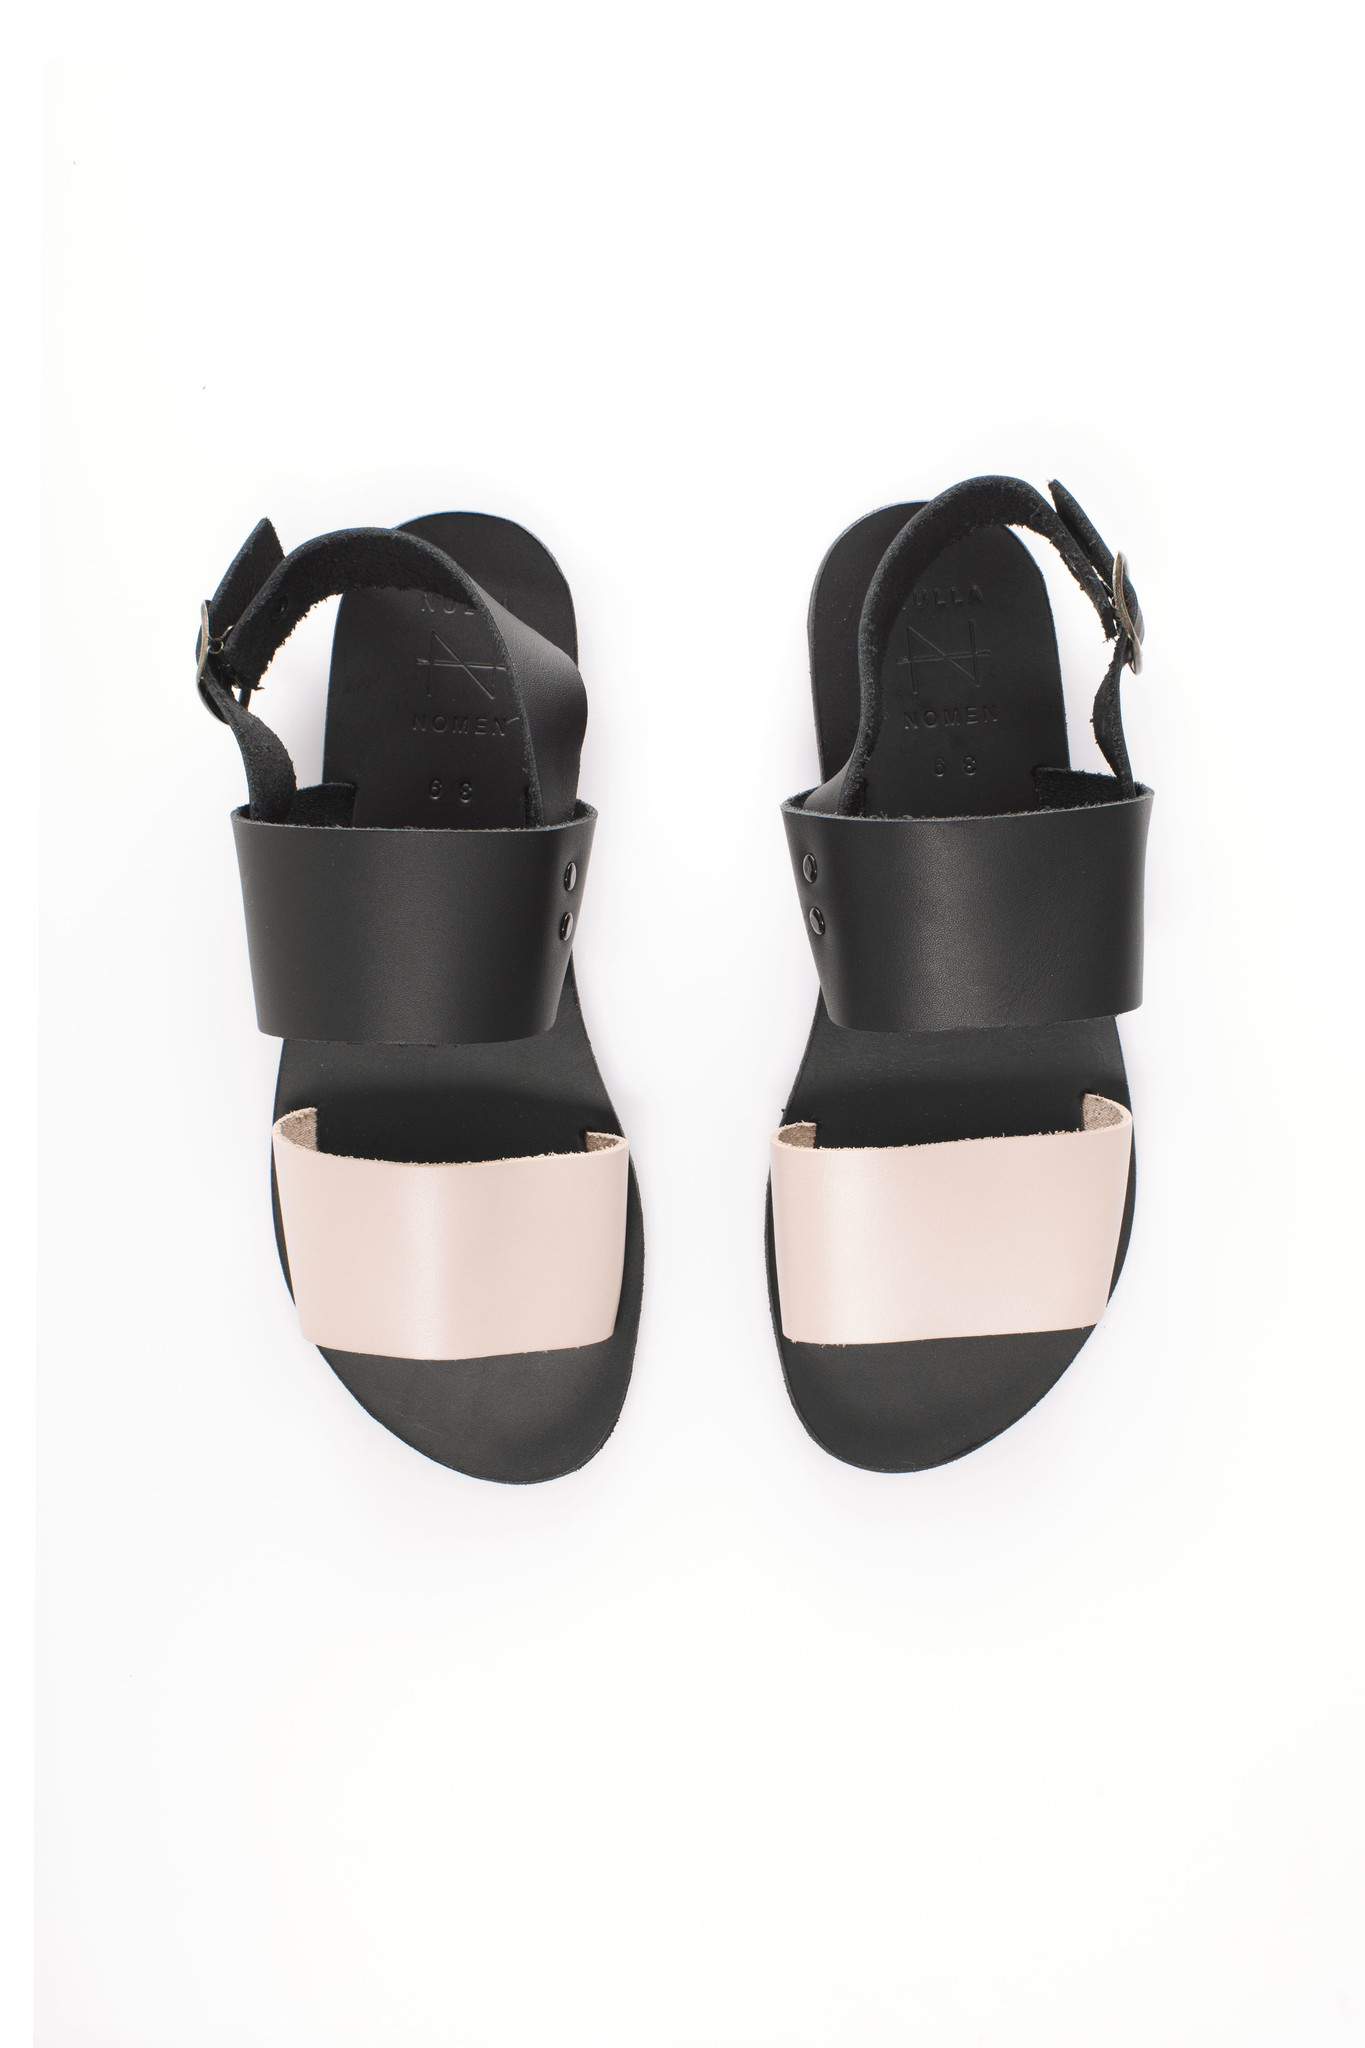 Nulla Nomen | Sandal black / Nude Vegetable Tanned Leather-3